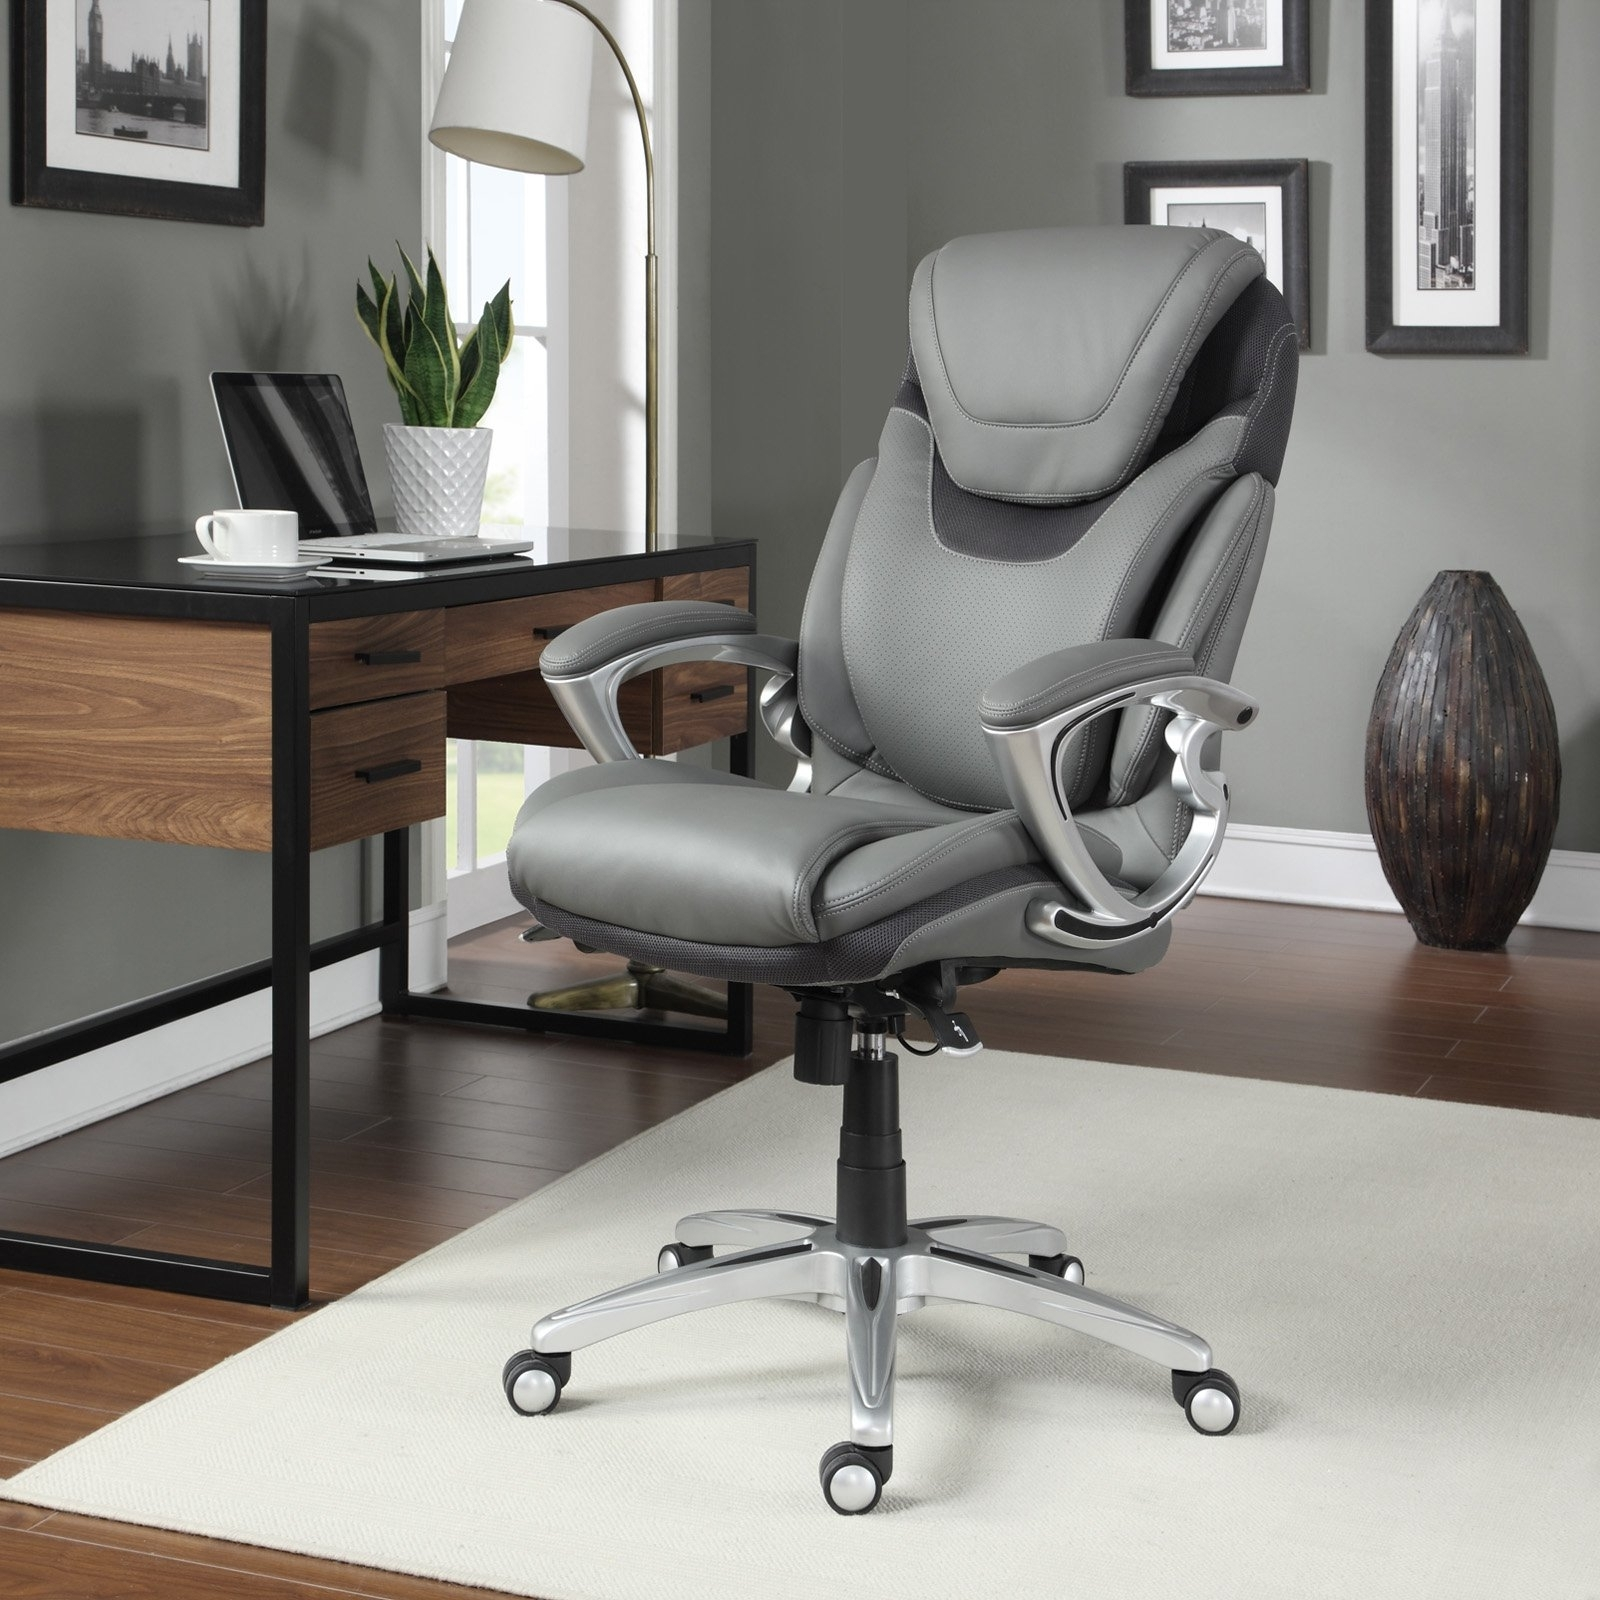 2018 Serta Air Health & Wellness Leather Executive Office Chair, Light For Ergonomic Ultra Modern White Executive Office Chairs (View 2 of 20)